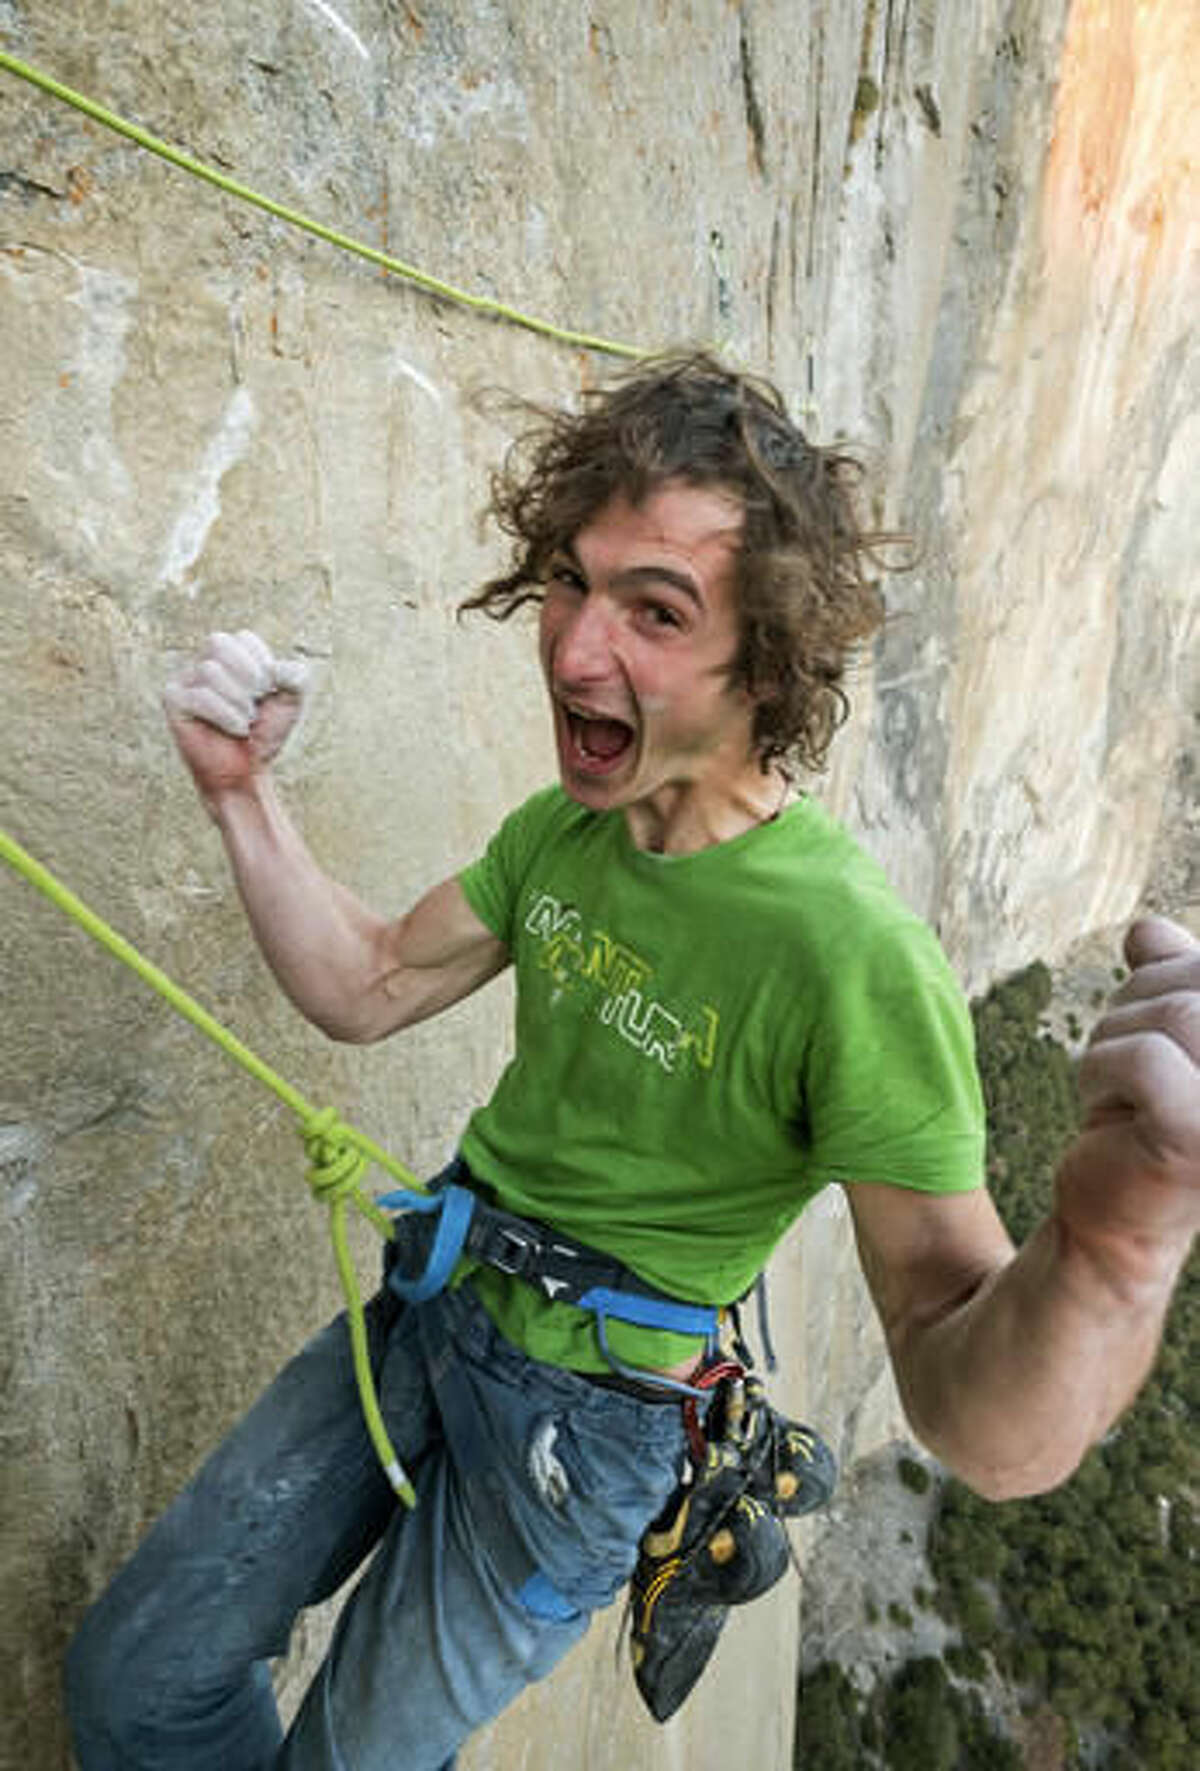 In this November 2016 photo courtesy of Heinz Zak and Black Diamond Equipment, Adam Ondra celebrates after finishing the most difficult pitches of his climb on the Dawn Wall of El Capitan in Yosemite National Park, Calif. Ondra, from the Czech Republic, scaled what's considered one of the world's most challenging rock walls found in Yosemite National Park, and he did it in record time. A spokesman for Black Diamond Equipment confirmed Tuesday, Nov. 22, 2016, that 23-year-old Adam Ondra completed a half-mile free-climb up the Dawn Wall on the famous El Capitan. (Heinz Zak/Courtesy of Black Diamond Equipment via AP)